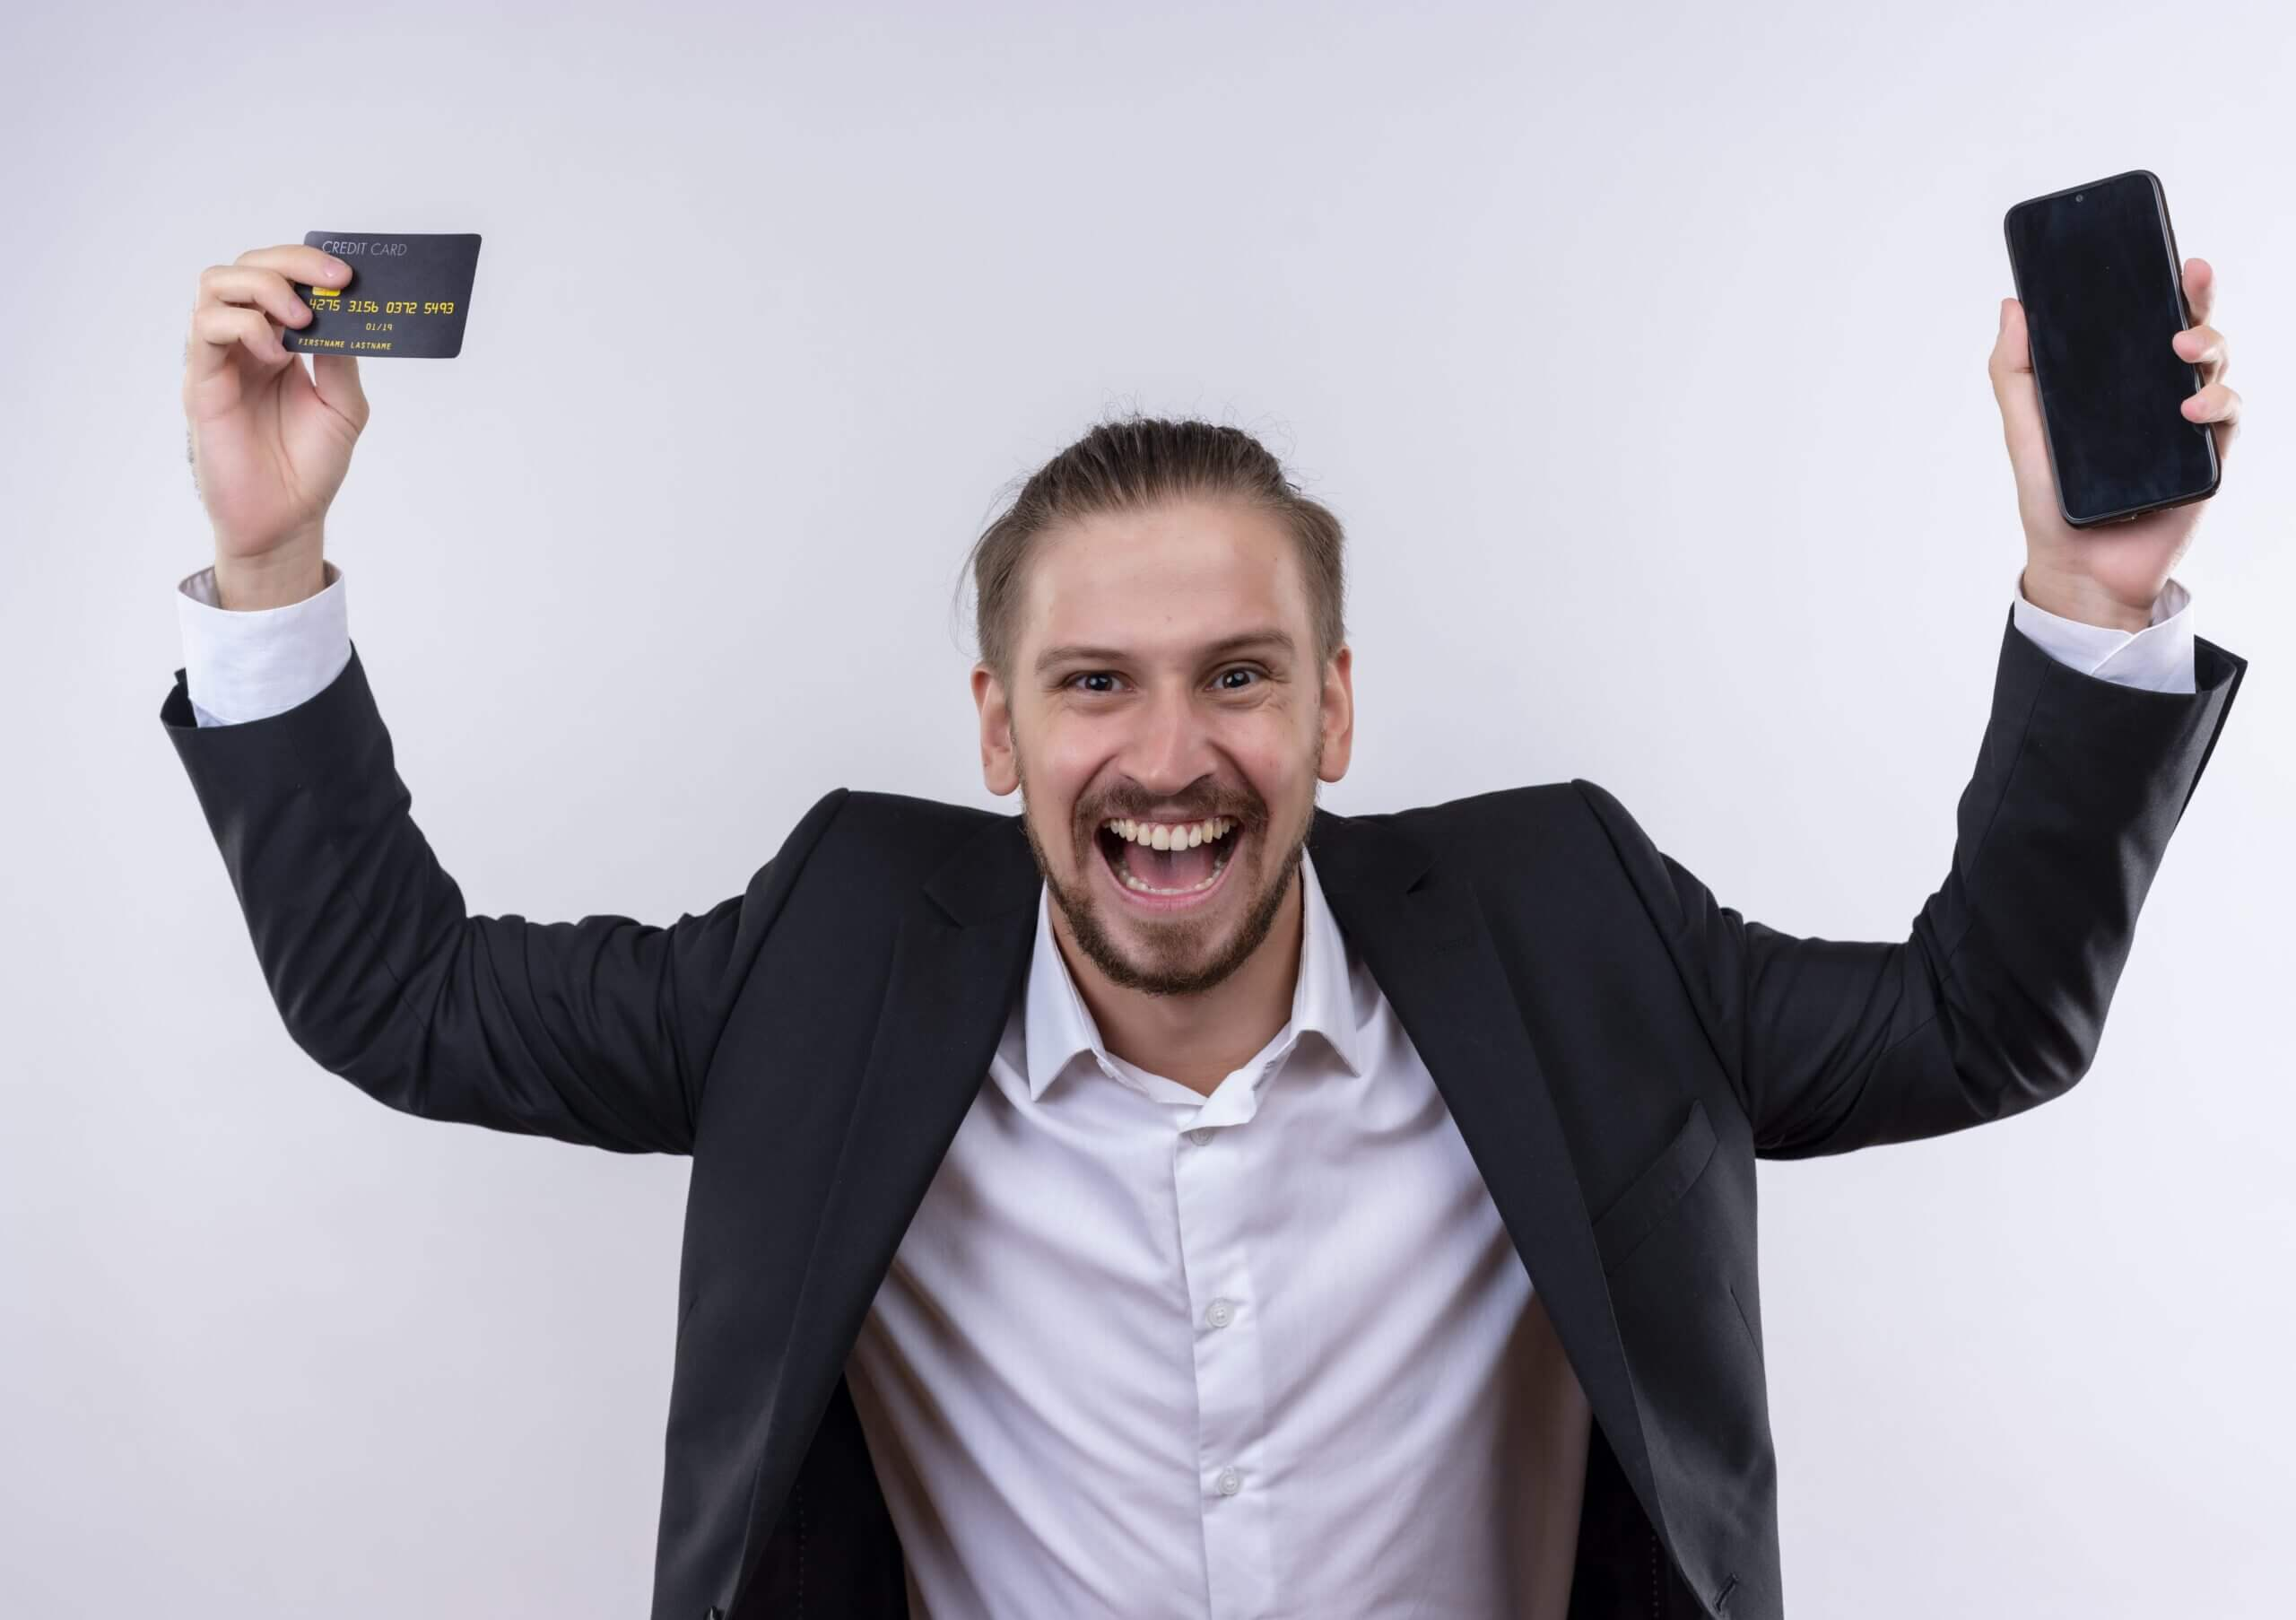 Ways To Get Virtual Credit Card In Ghana and Nigeria